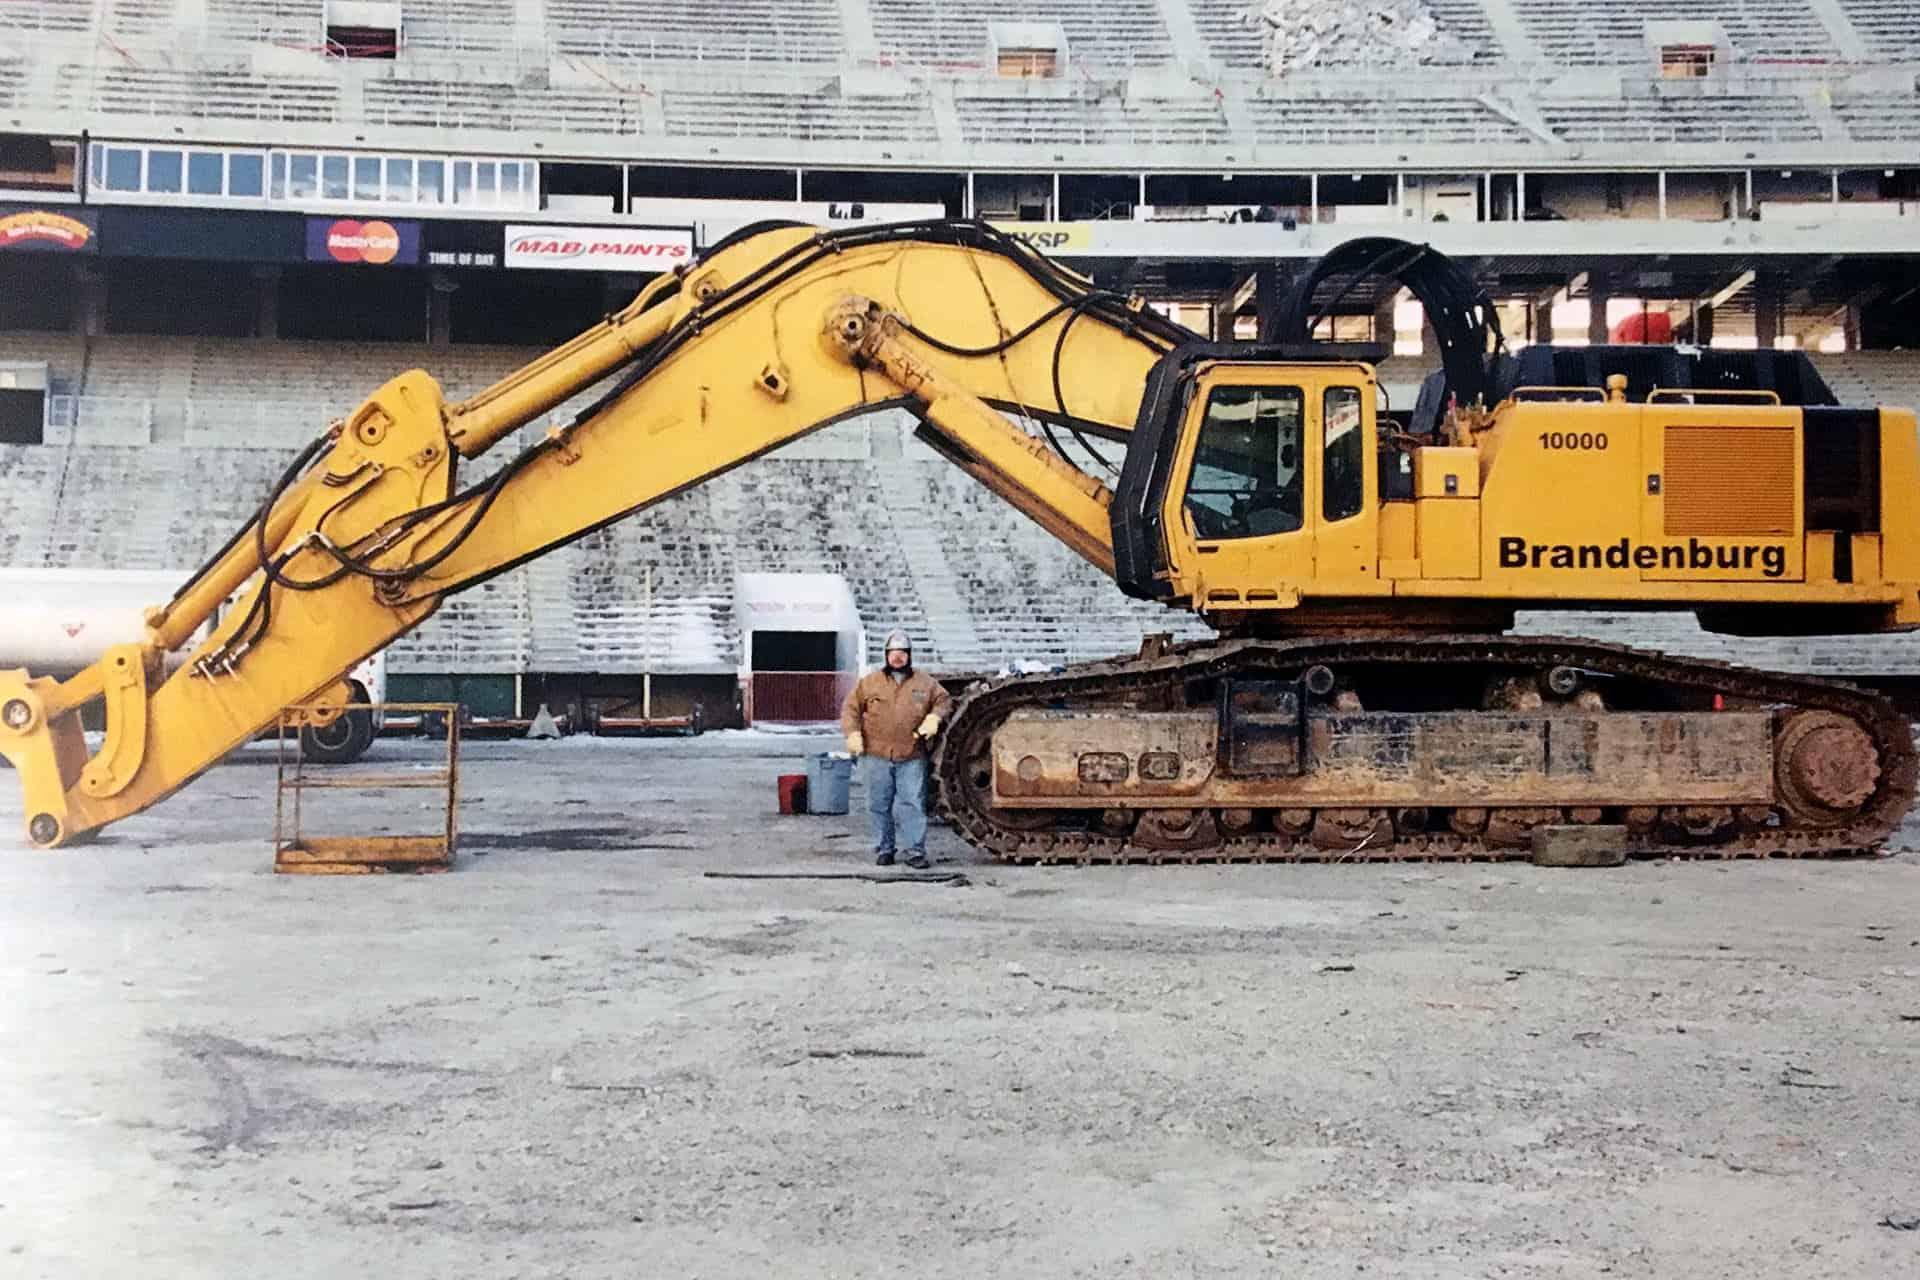 Nick Peetros with a crane during demolition inside the stadium.